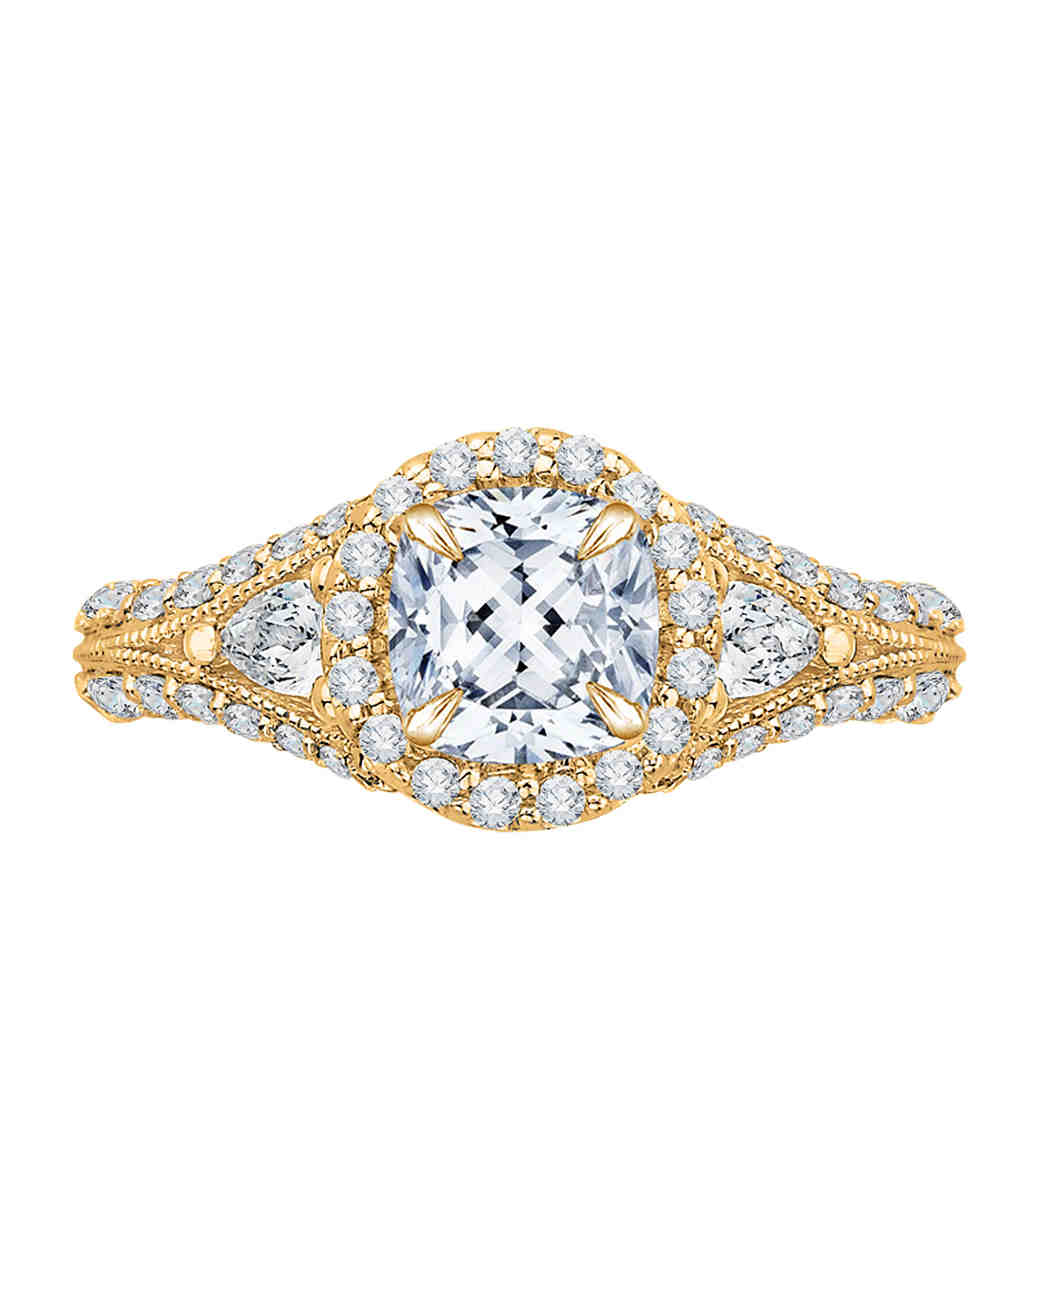 Carizza Yellow Gold Engagement Ring with Halo and Double diamond shank